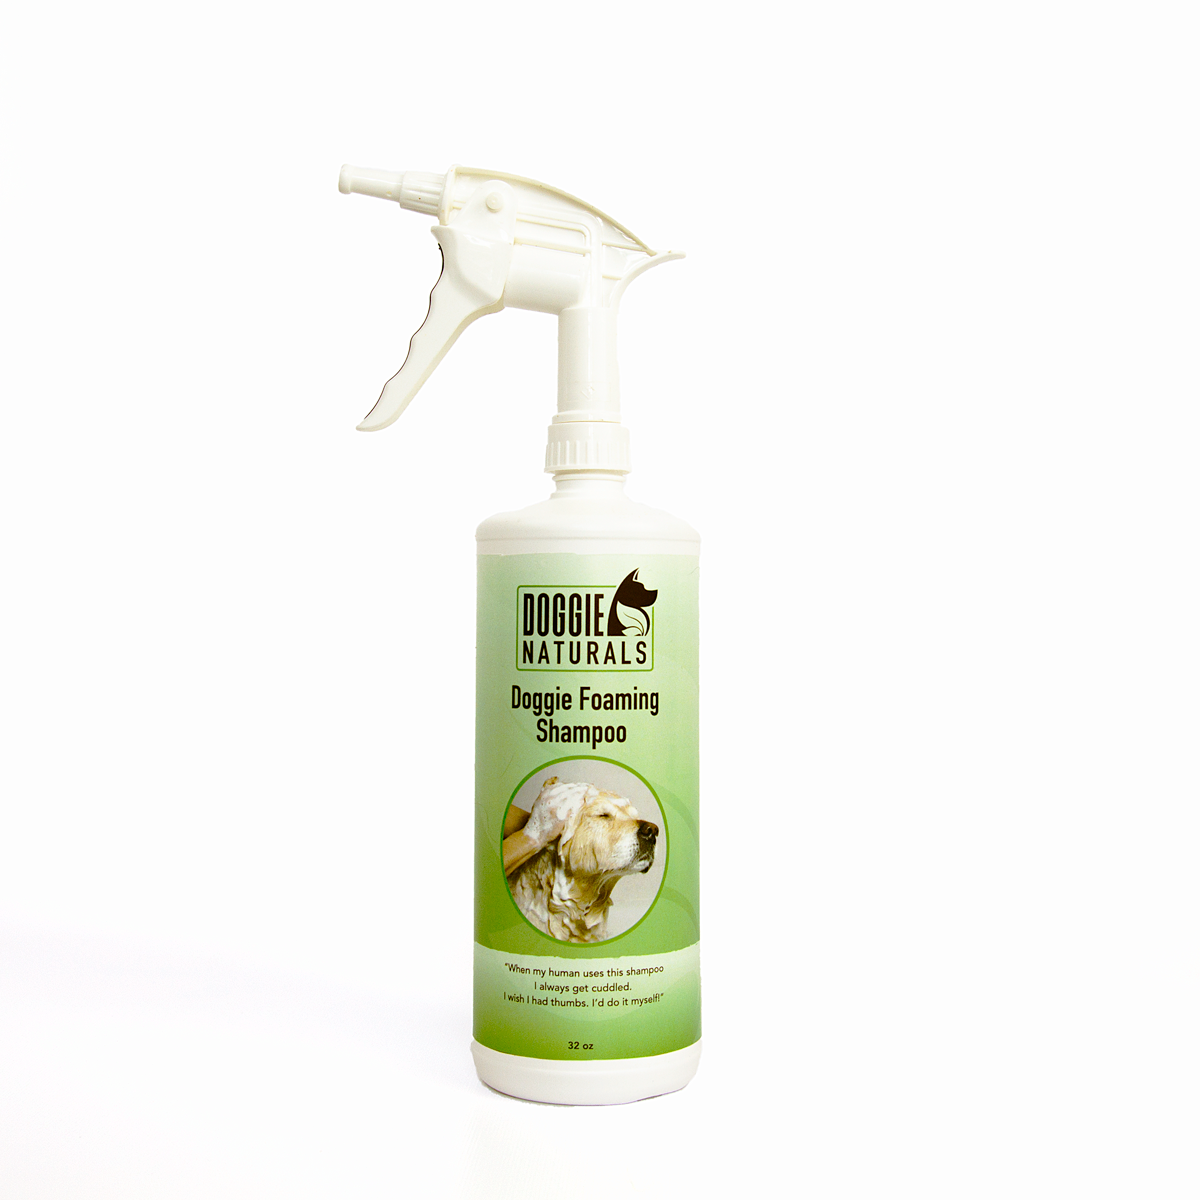 Doggie Foaming Shampoo